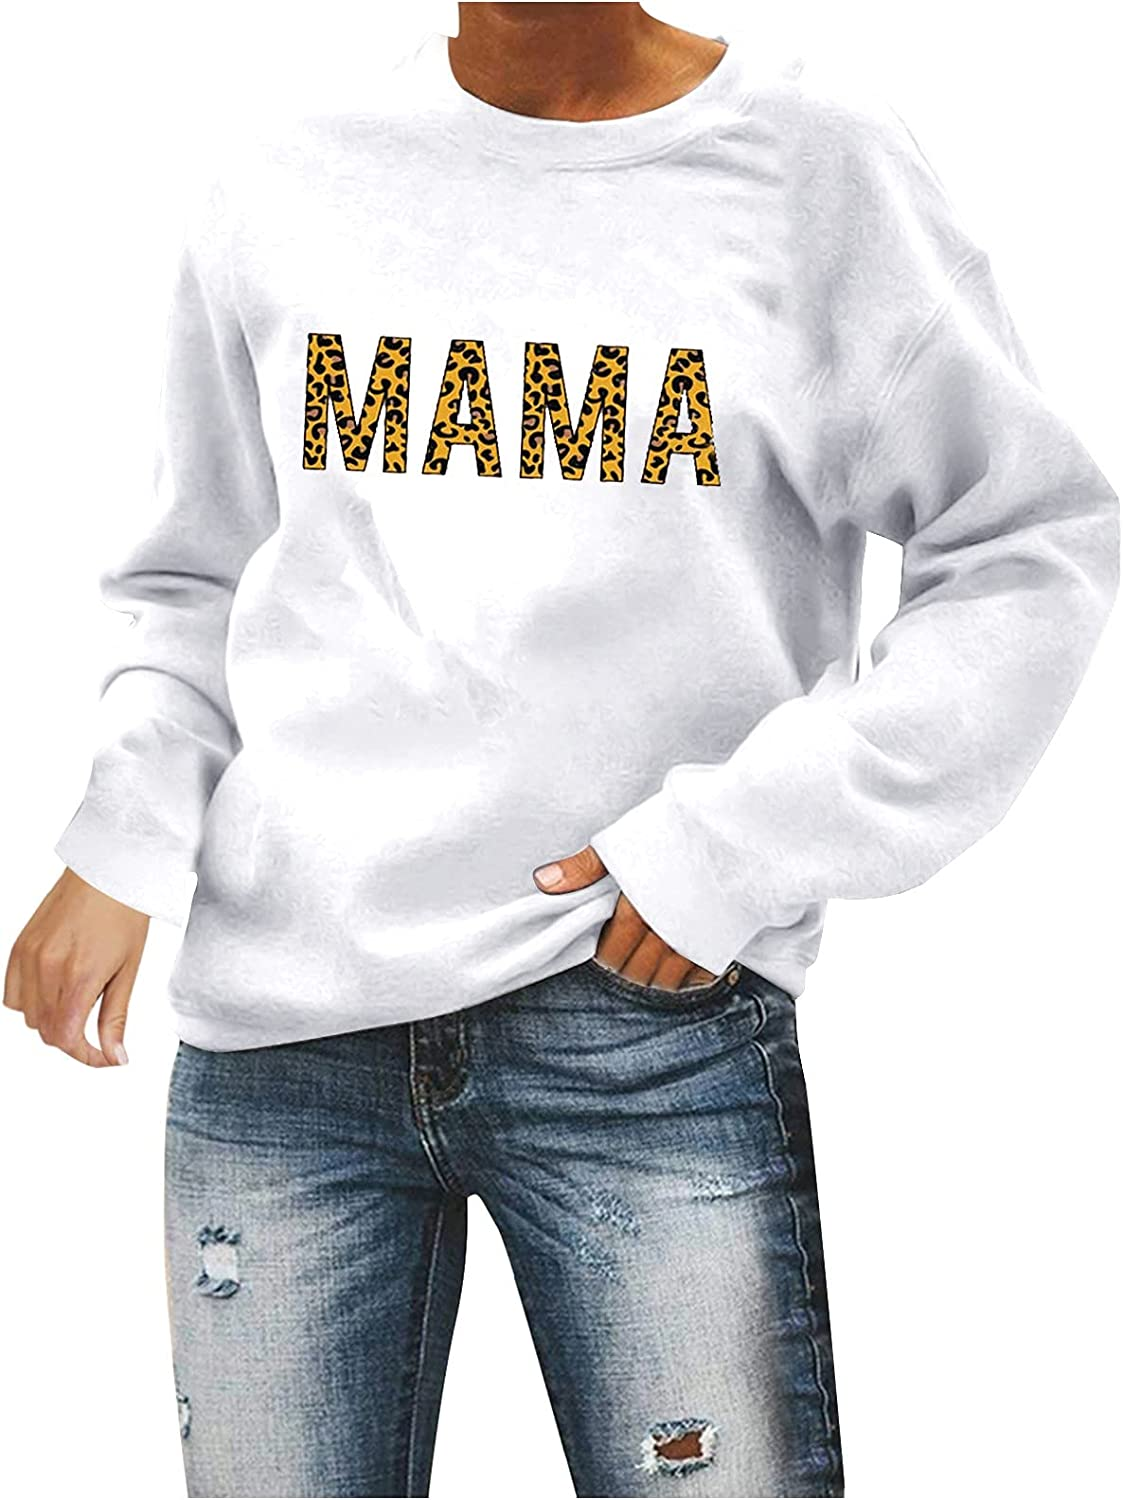 Oversized Sweatshirt for Women,Womens Vintage Graphic Round Neck Long Sleeve Sweatshirt Casual Loose Fitting Pullover Tops